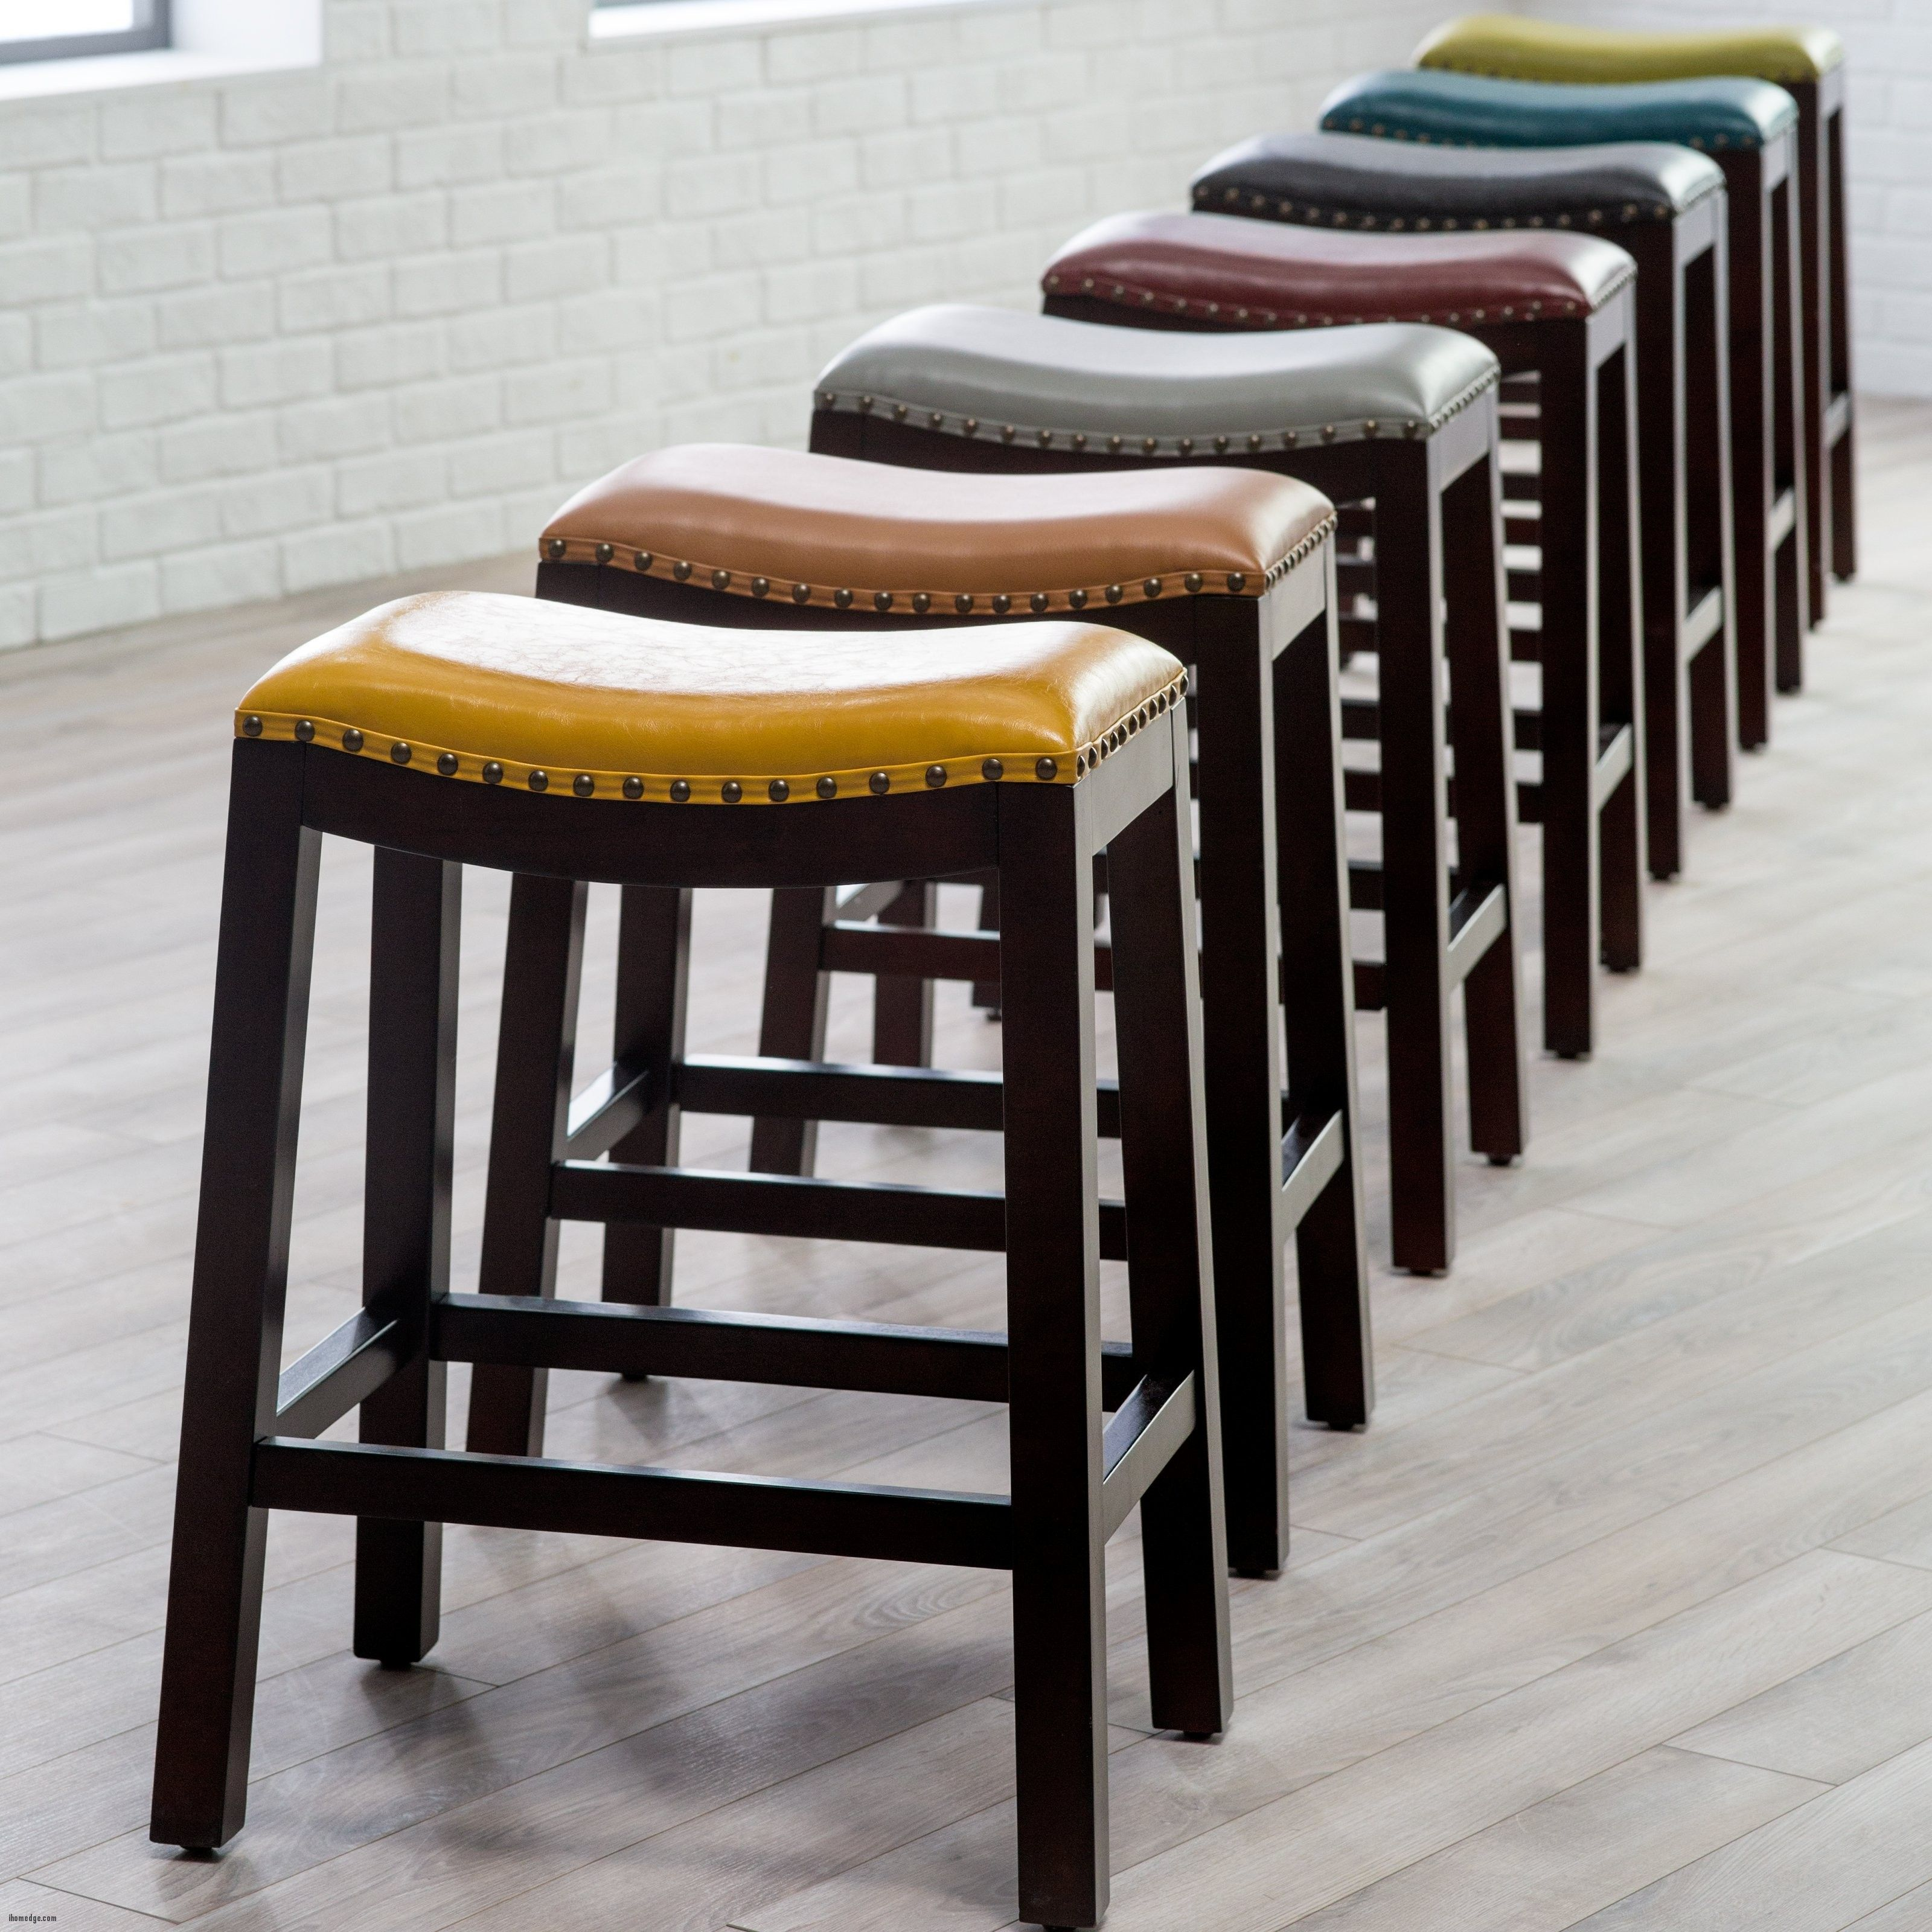 24 Inch Counter Chairs High End Folding Lawn New Wonderful Stools Saddle Seat Bar Stool Back Http Ihomedge Com 8478 Check More At